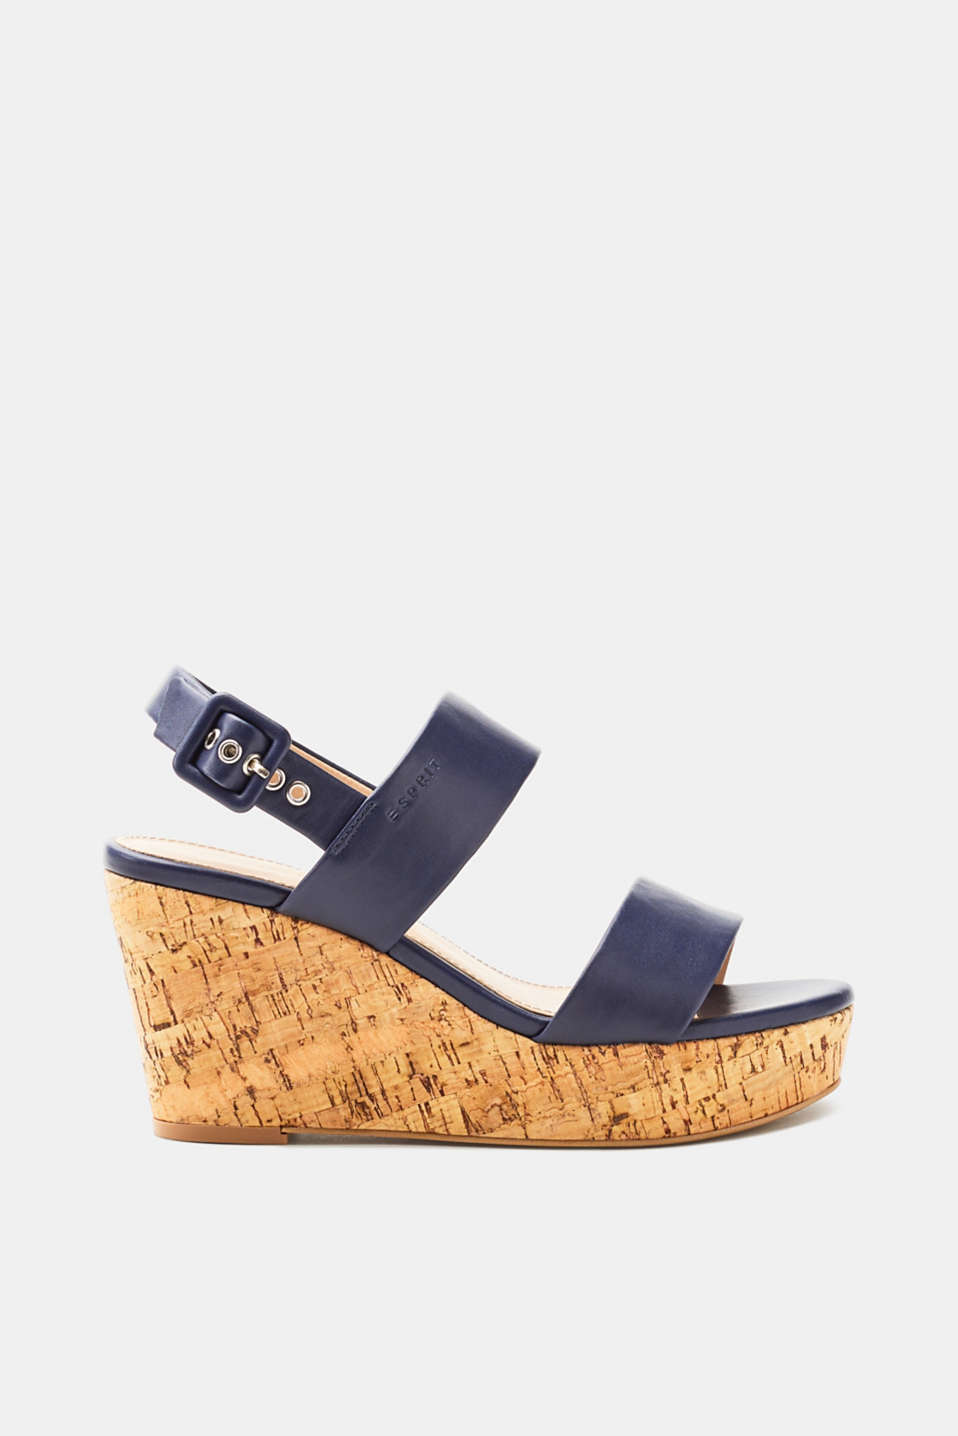 A classic shoe for your summer look: cork-effect wedge sandals